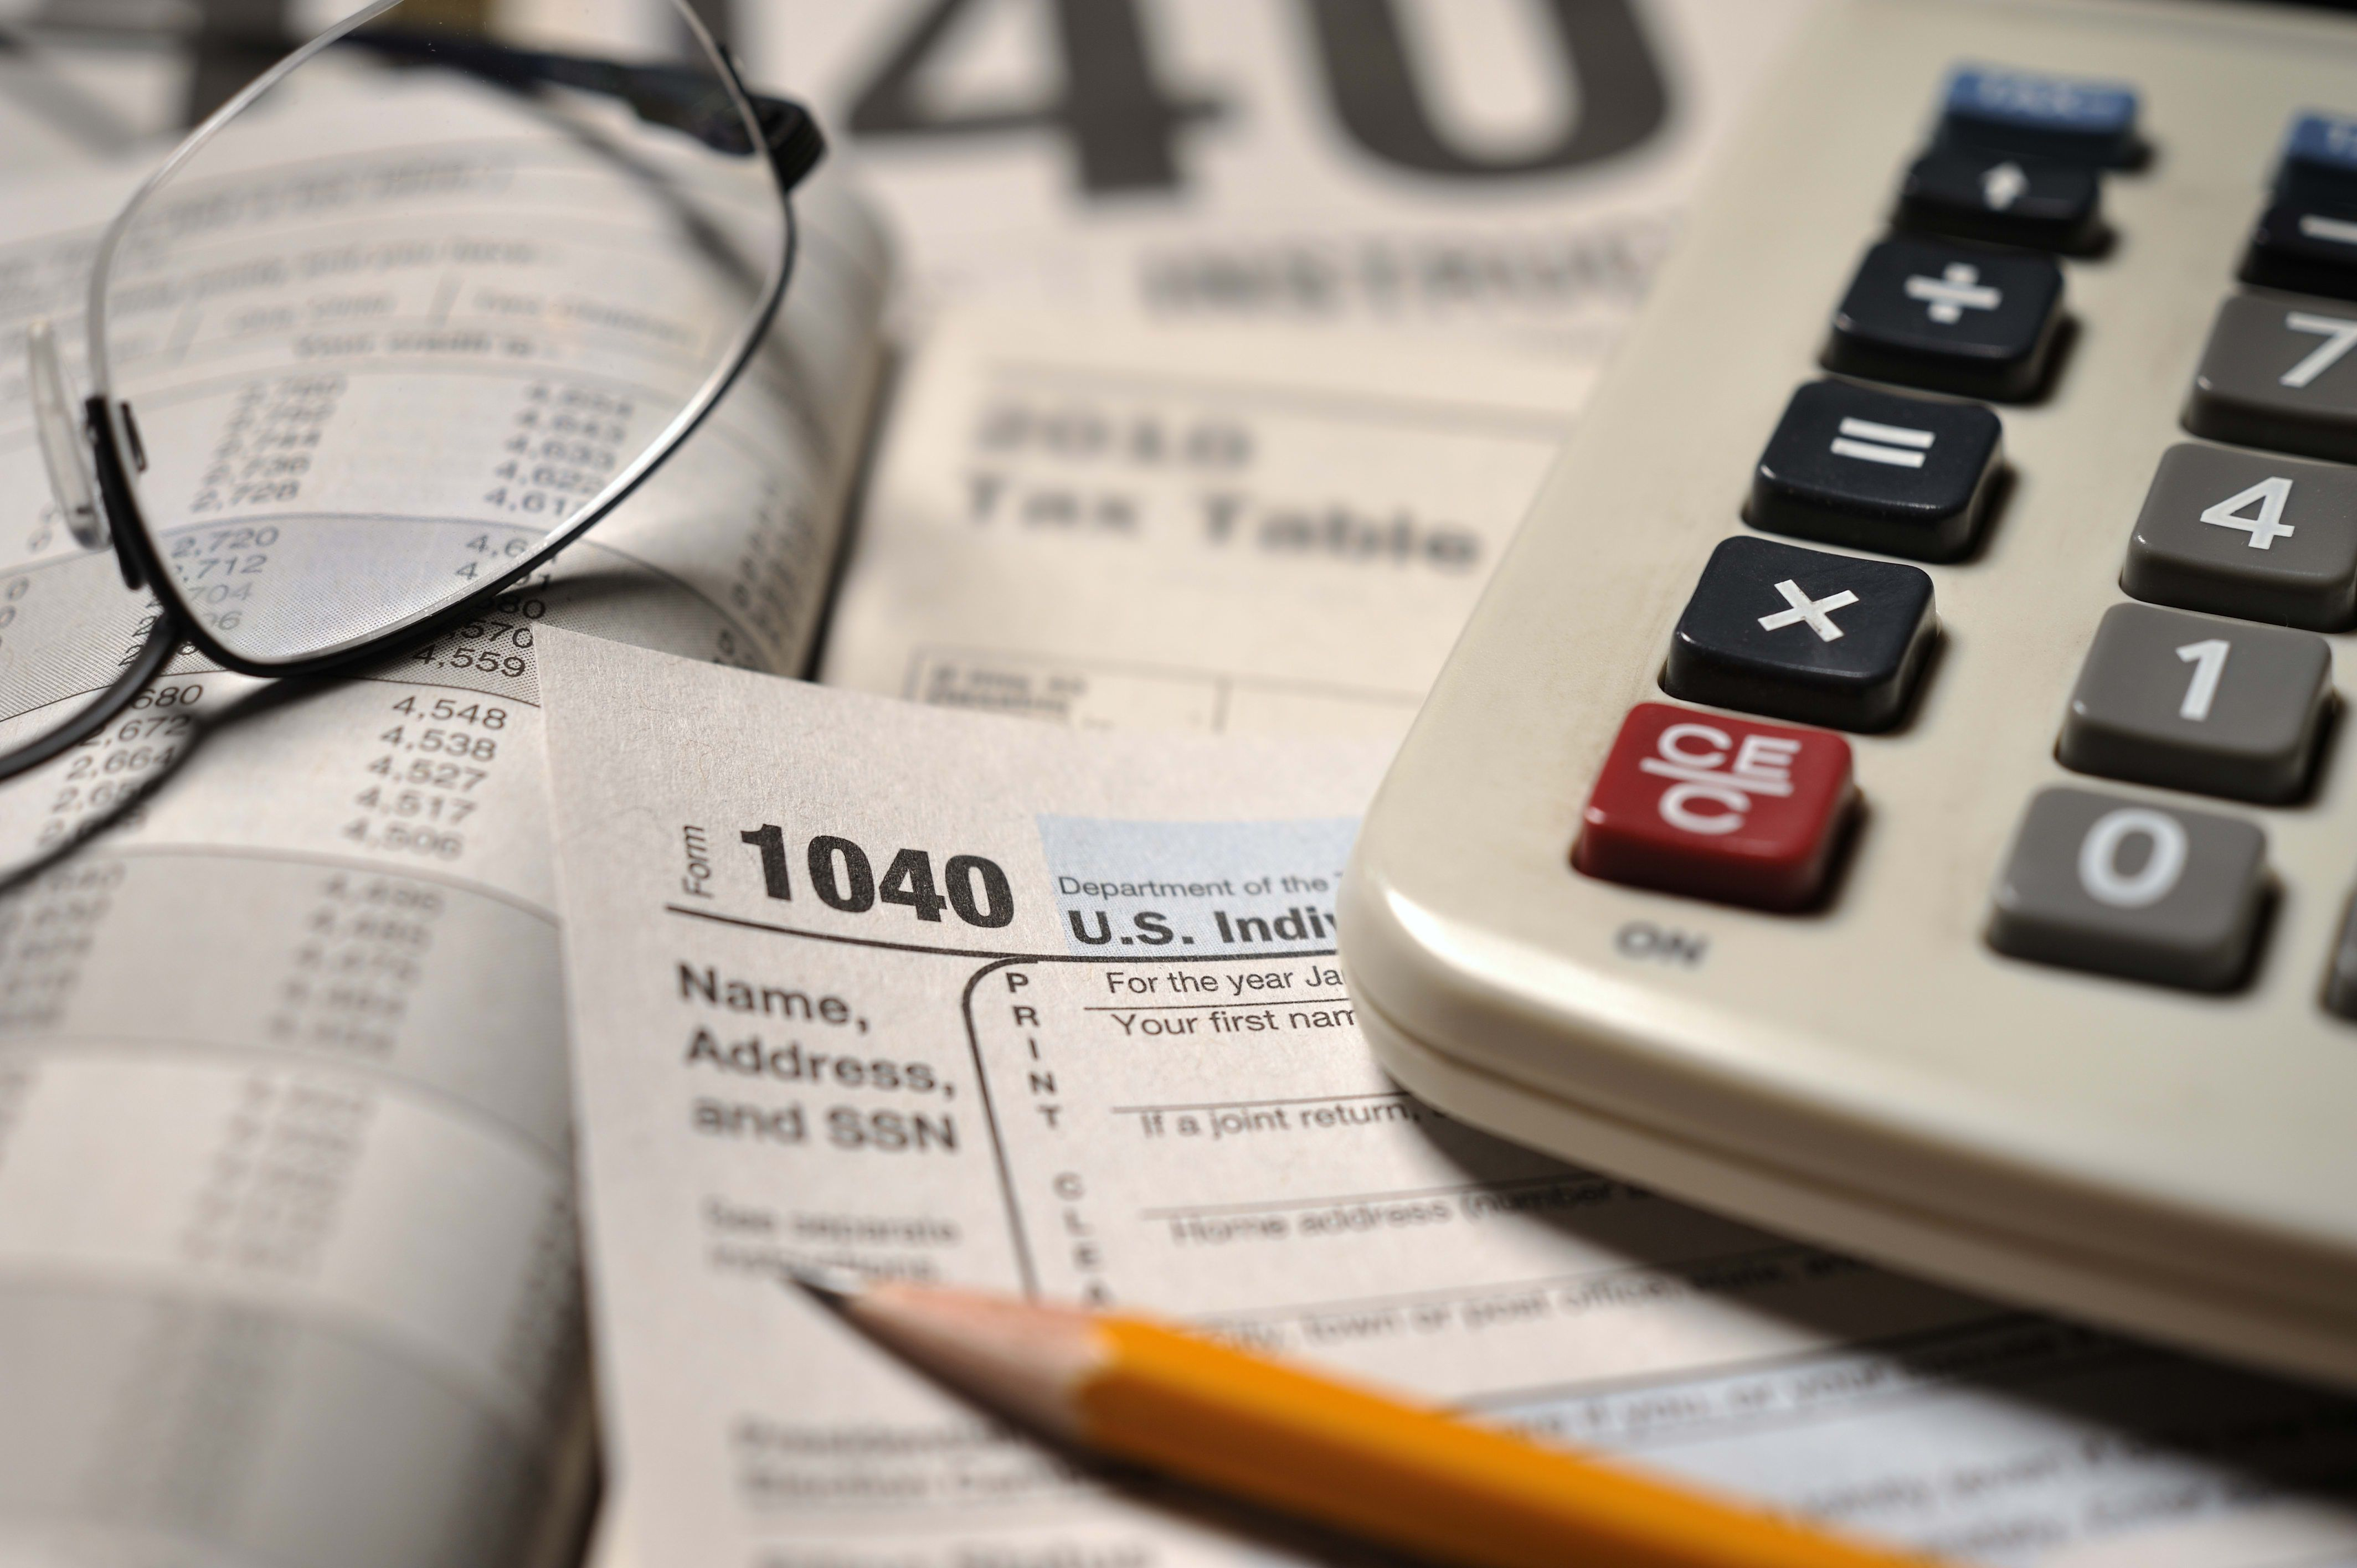 While most people will never face an audit — only 0.45% of taxpayers did in fiscal year 2019 — there are other types of IRS inquiries that fall short of a full-blown audit.  #irs #taxpreparation #tax #charitablegiving #returns #taxes #accounting #taxpayers #payroll #bookkeeping #refund #california #burbank #cpa #accountants #audit #financialservices #financeandeconomy #experienced #firm #best #money #smallbusinessowners #smallbusiness #taxlaw